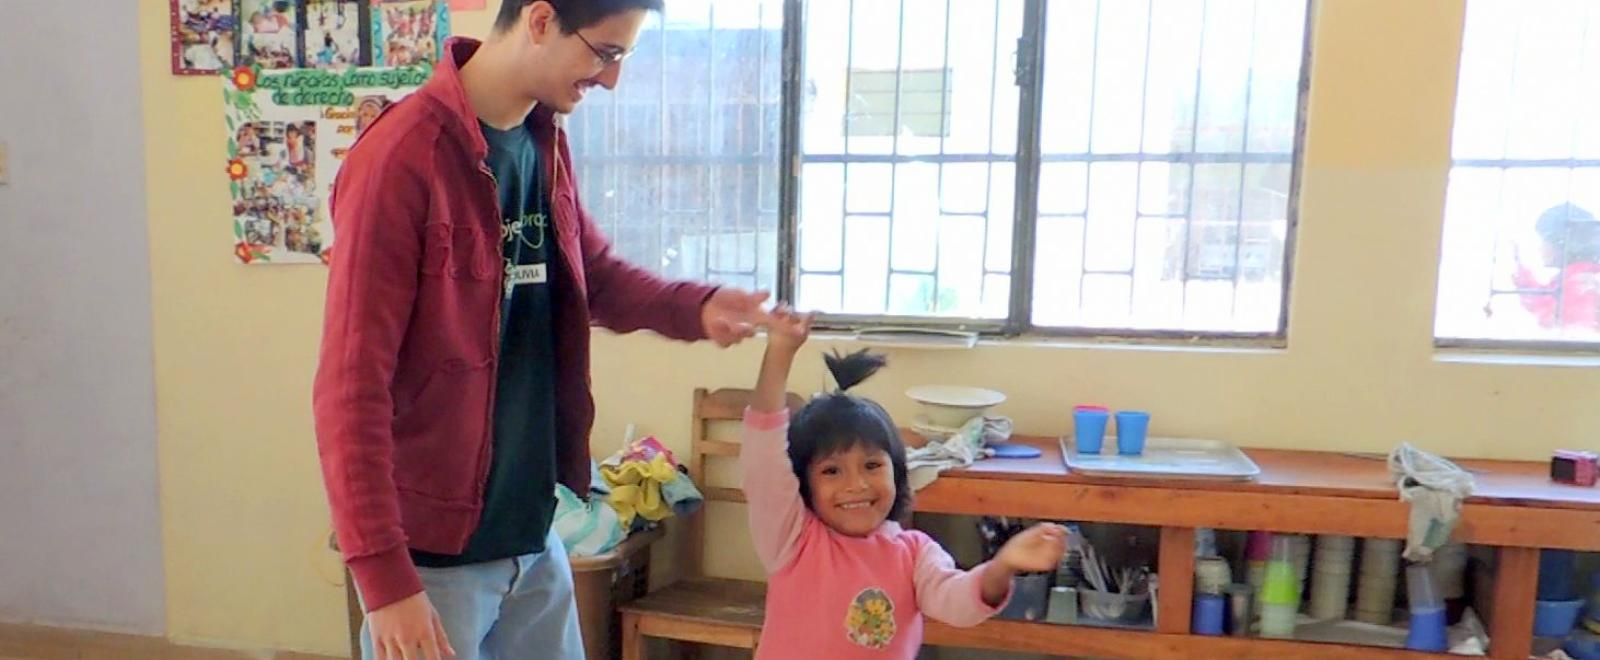 Projects Abroad Early Childhood Development volunteer dancing with a child during his spring break project placement